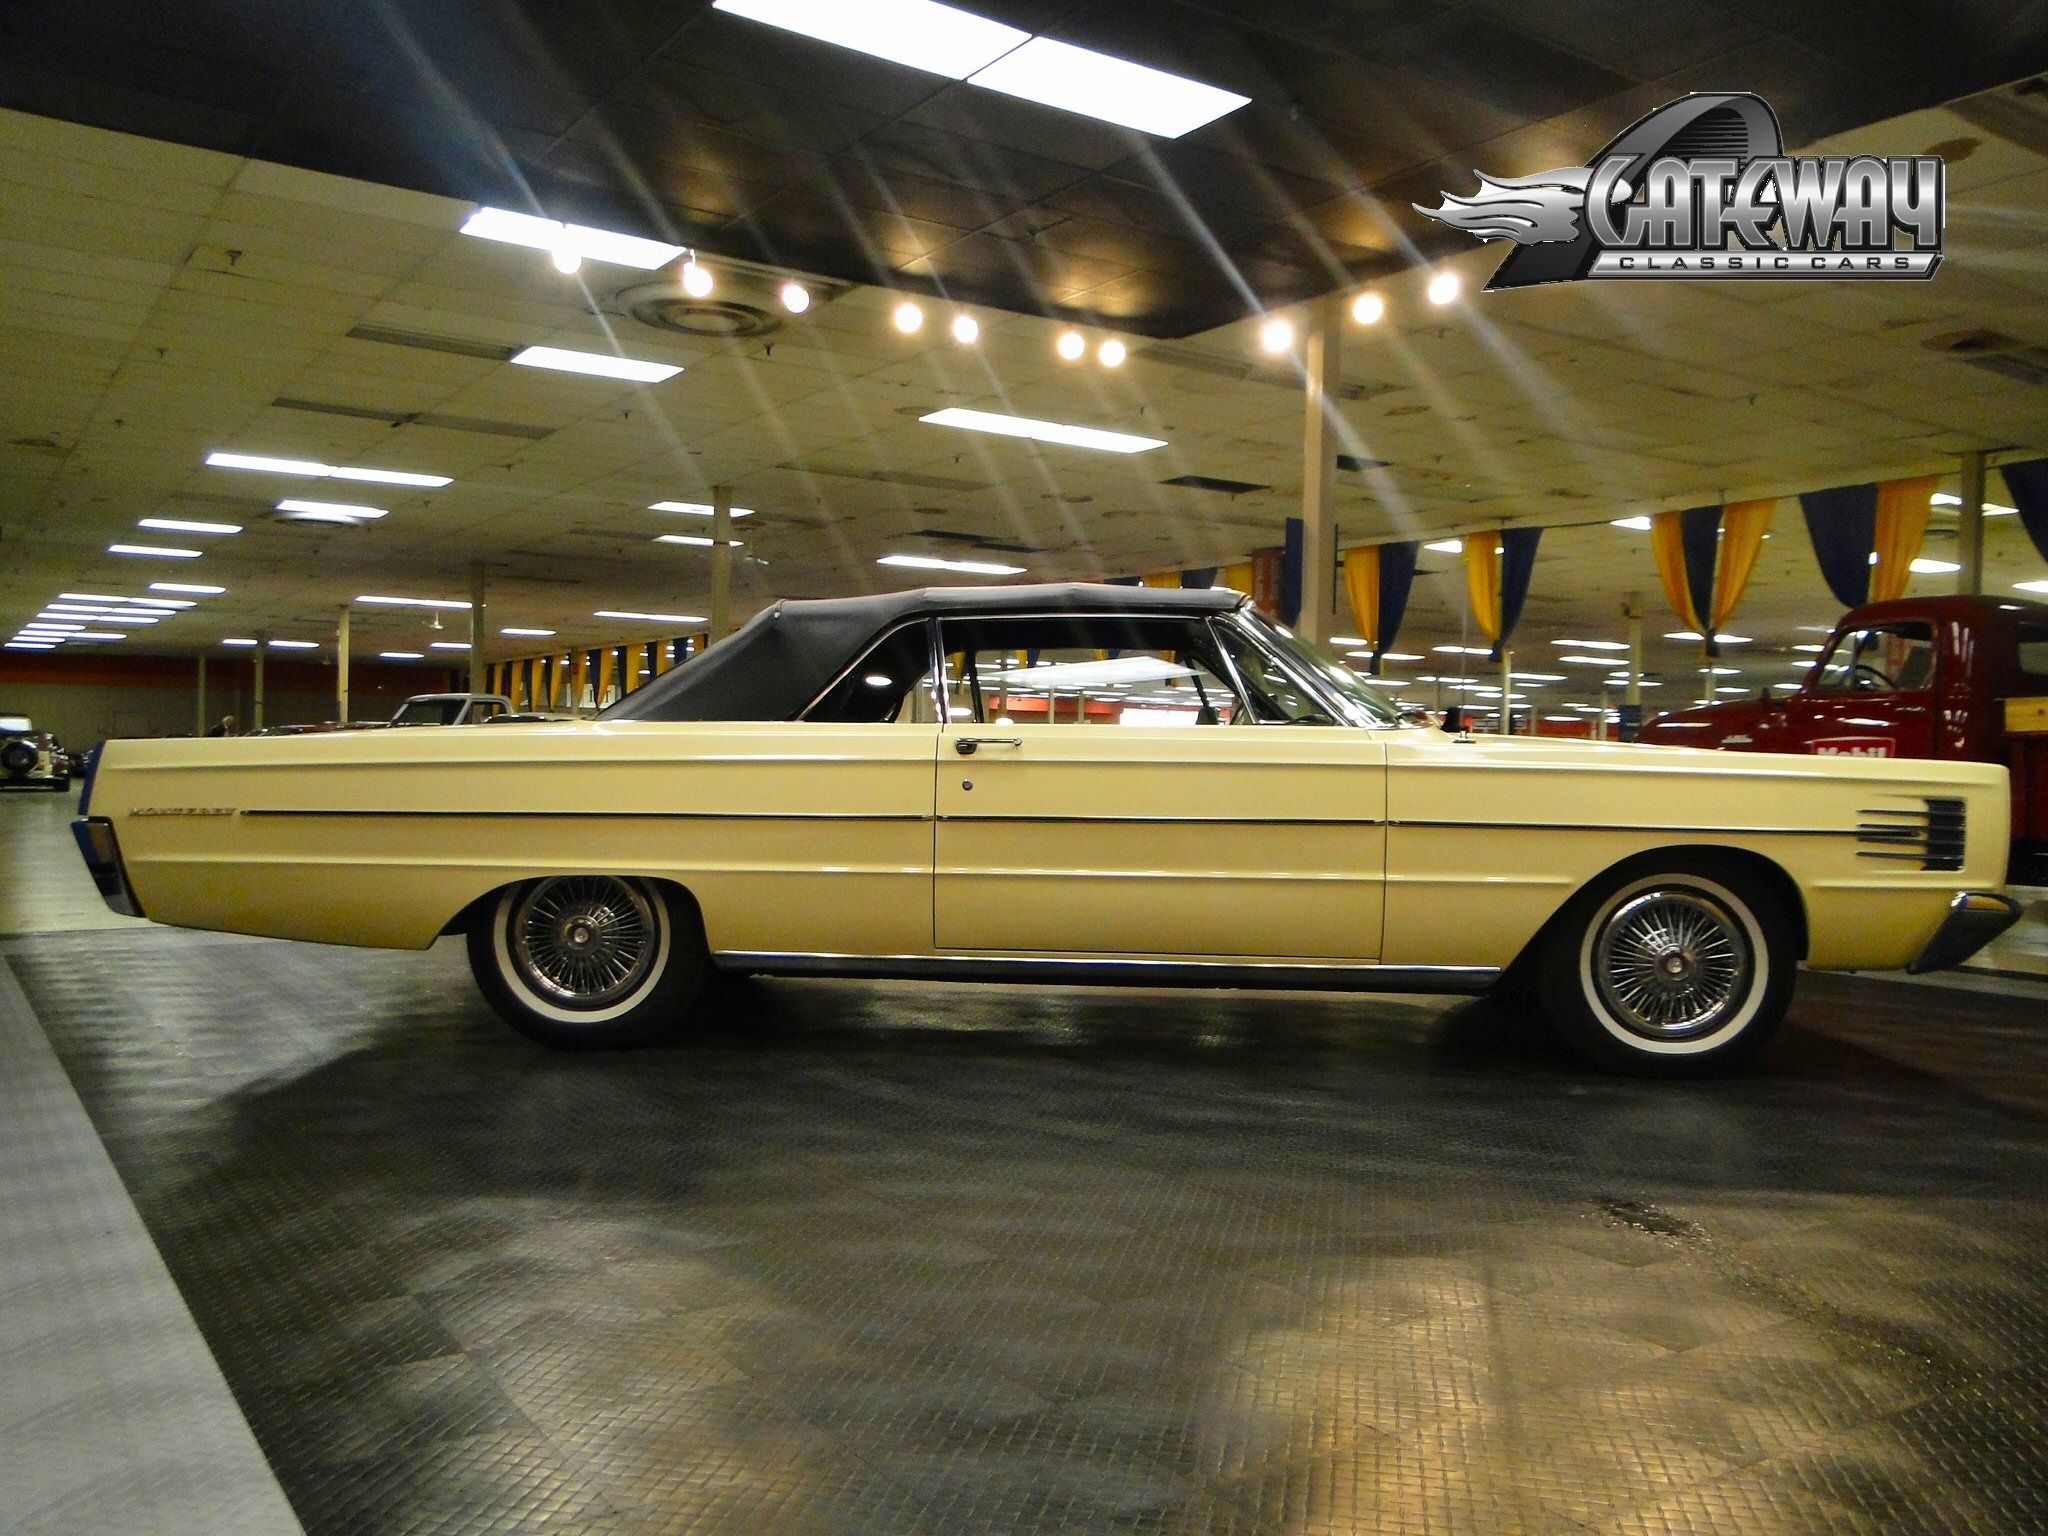 1965 Mercury Monterey Convertible for Sale - Gateway Classic Cars ...